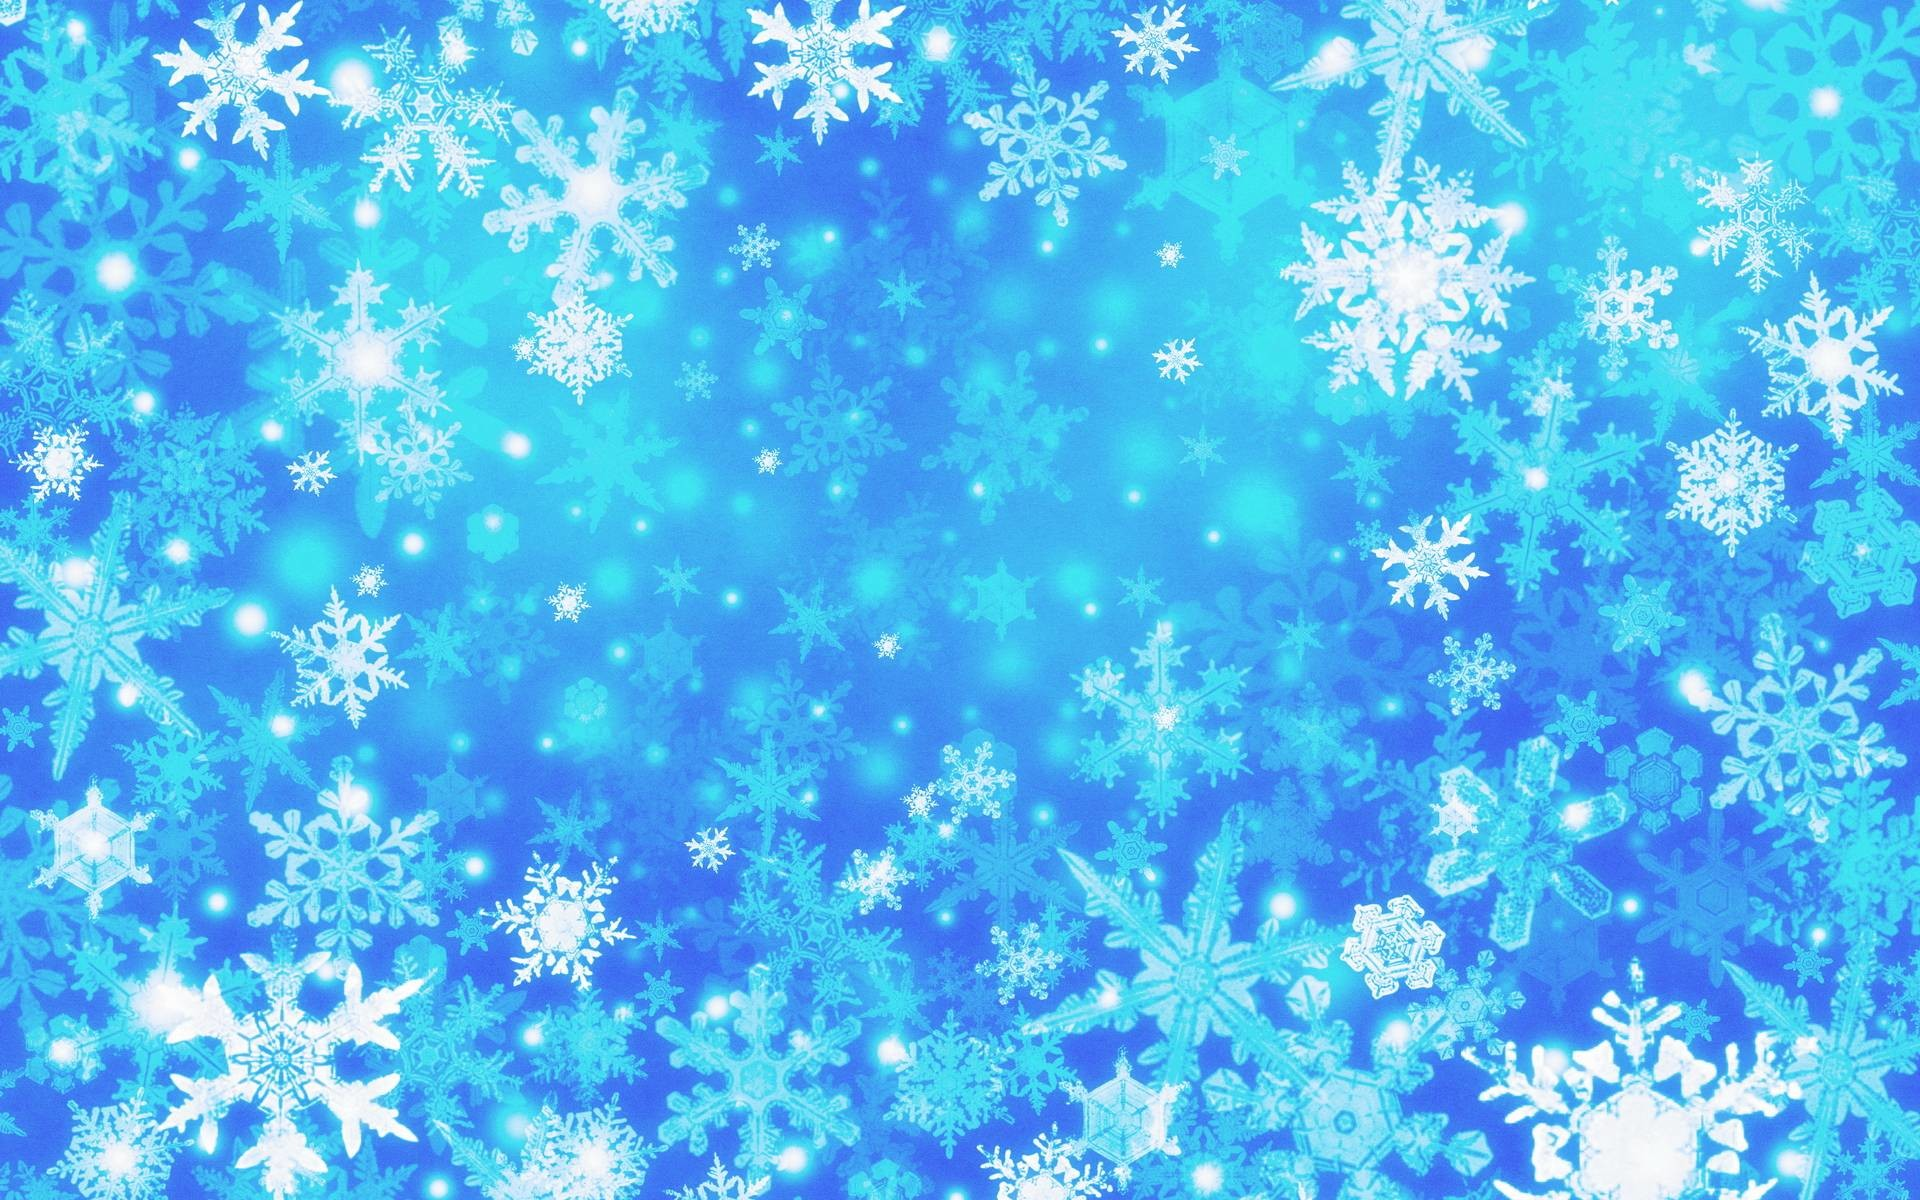 Free Snow Falling Animated Wallpaper Snow Background Pictures 59 Images